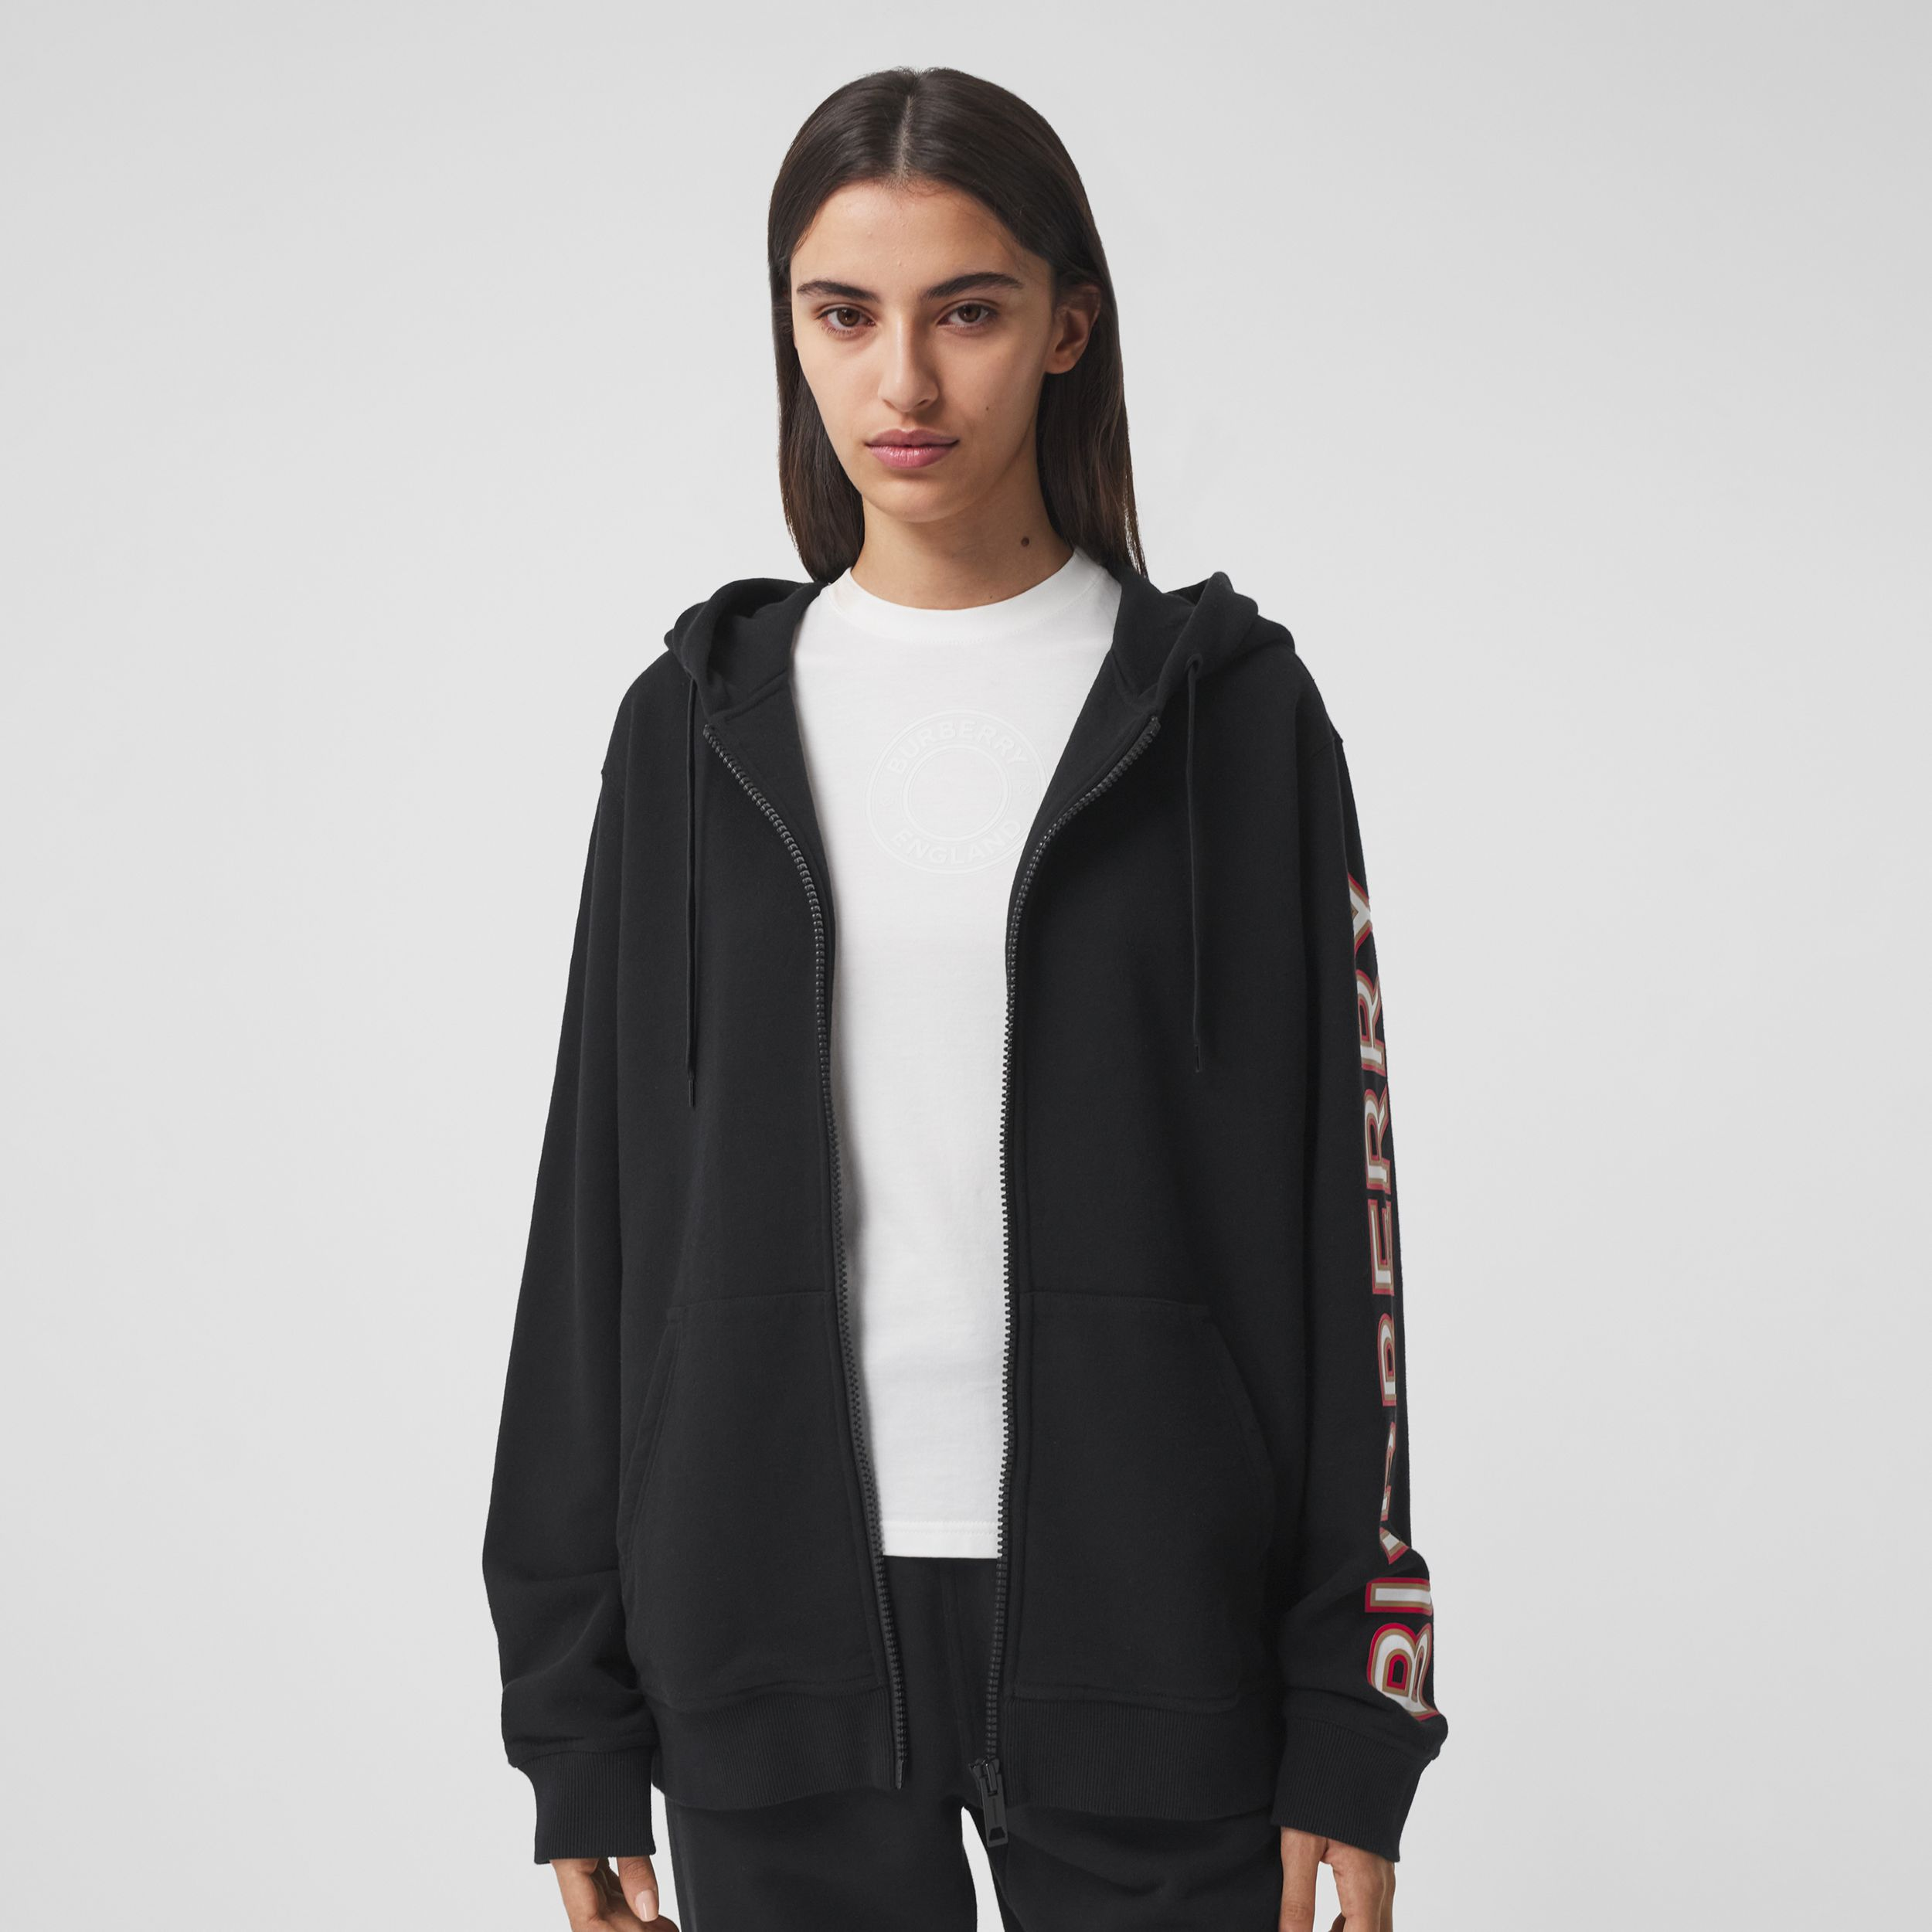 Logo Print Cotton Oversized Hooded Top in Black - Women | Burberry - 4